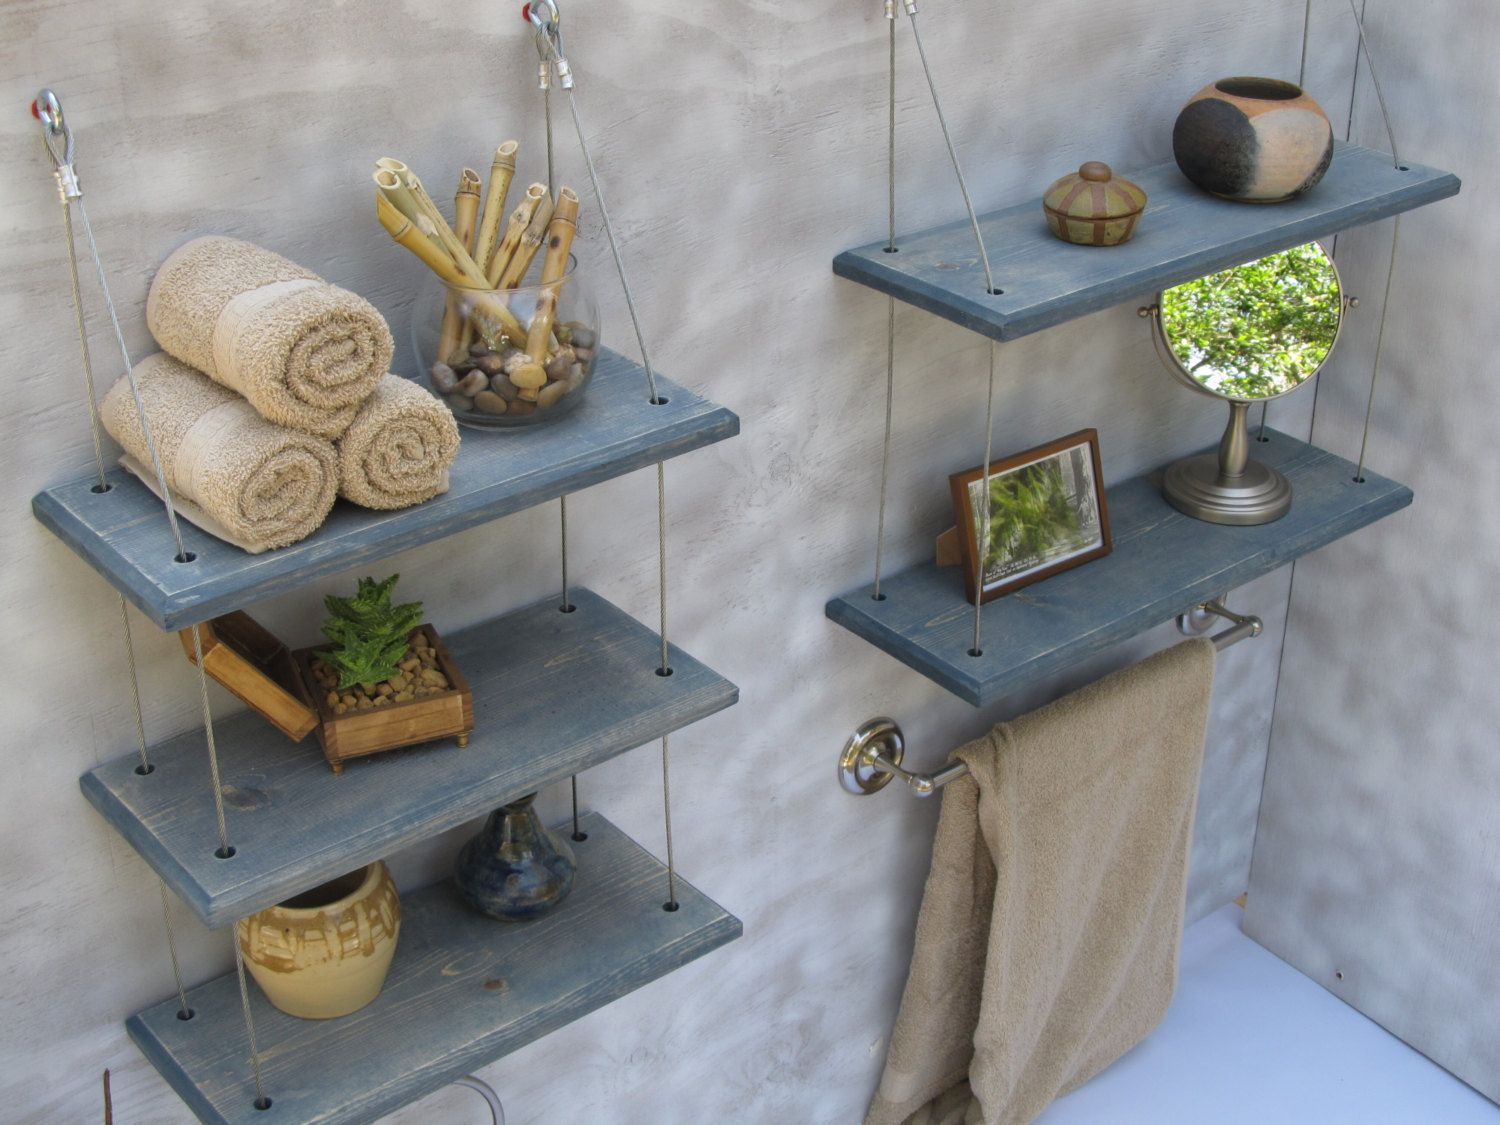 Bathroom shelves floating shelves industrial by - Floating shelf ideas for bathroom ...